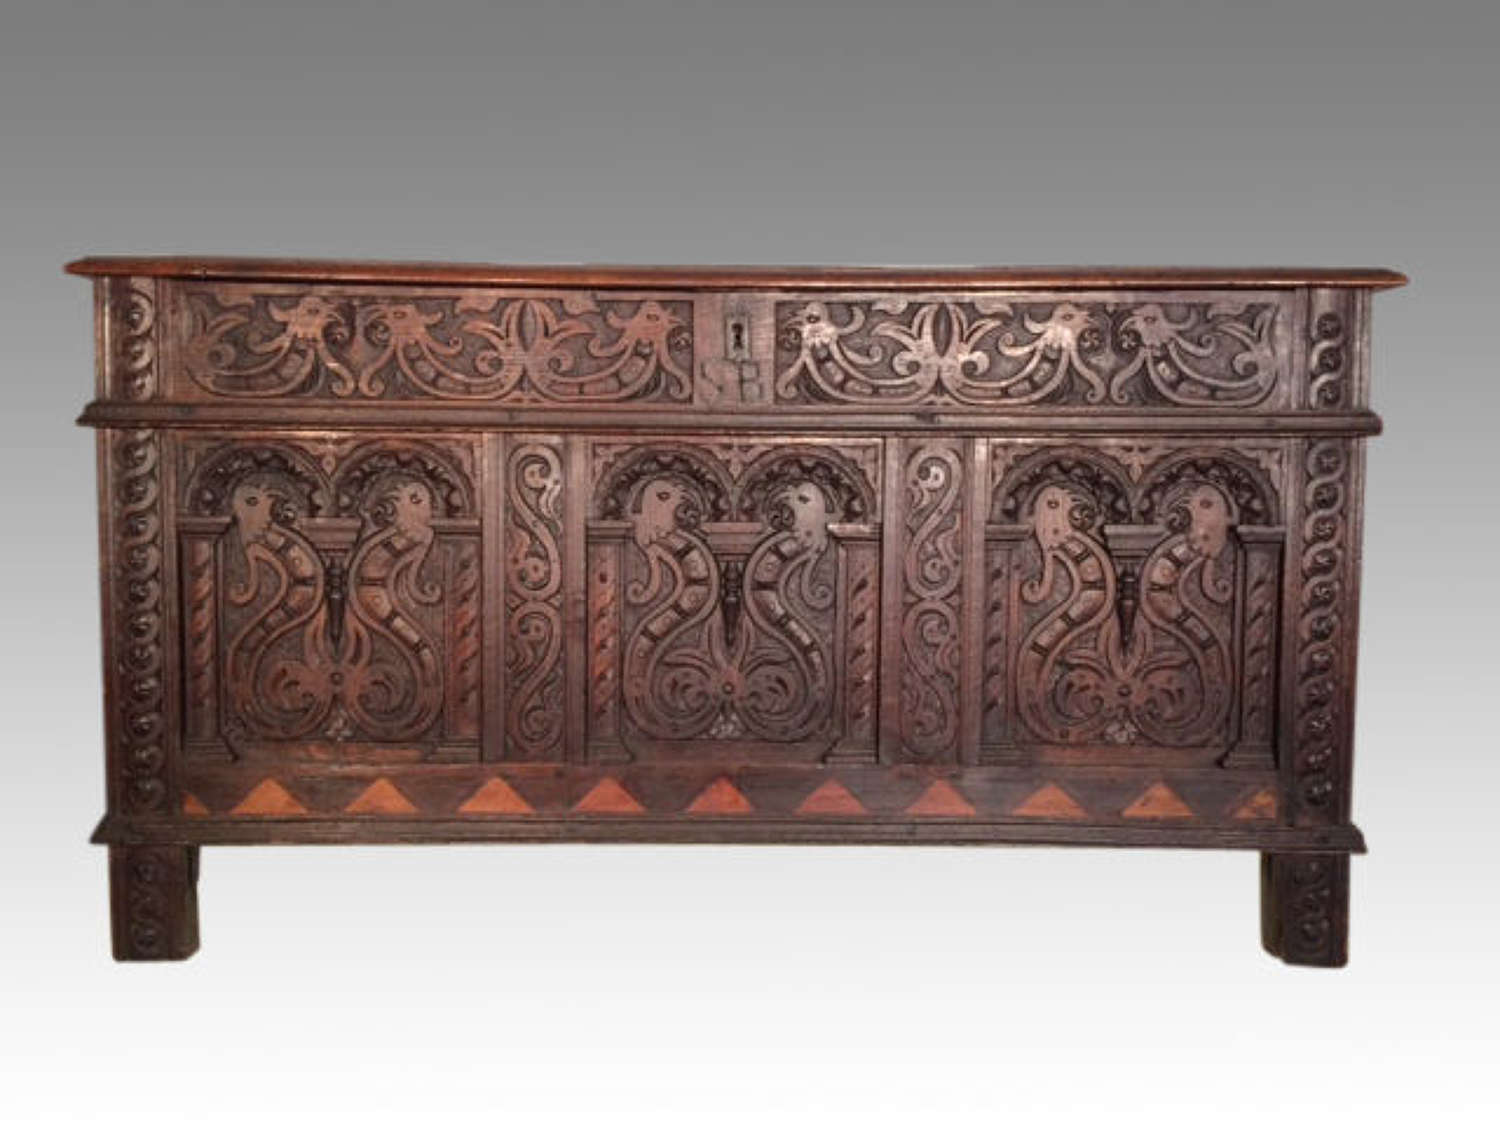 17th century antique carved oak arcaded front coffer.